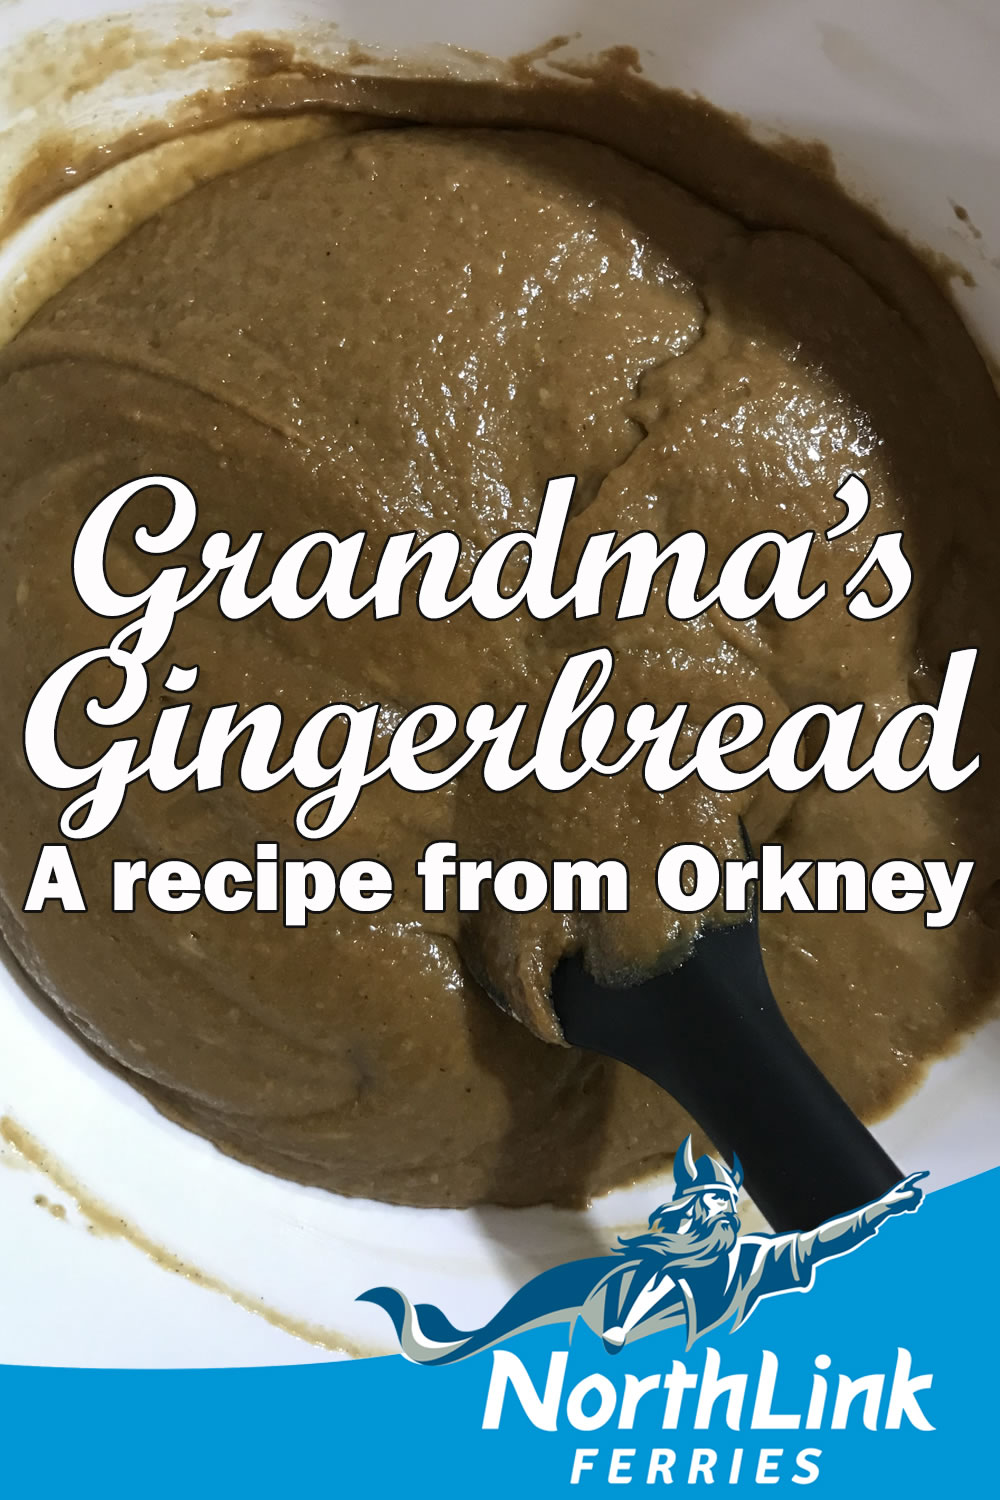 Grandma's Gingerbread - A recipe from Orkney